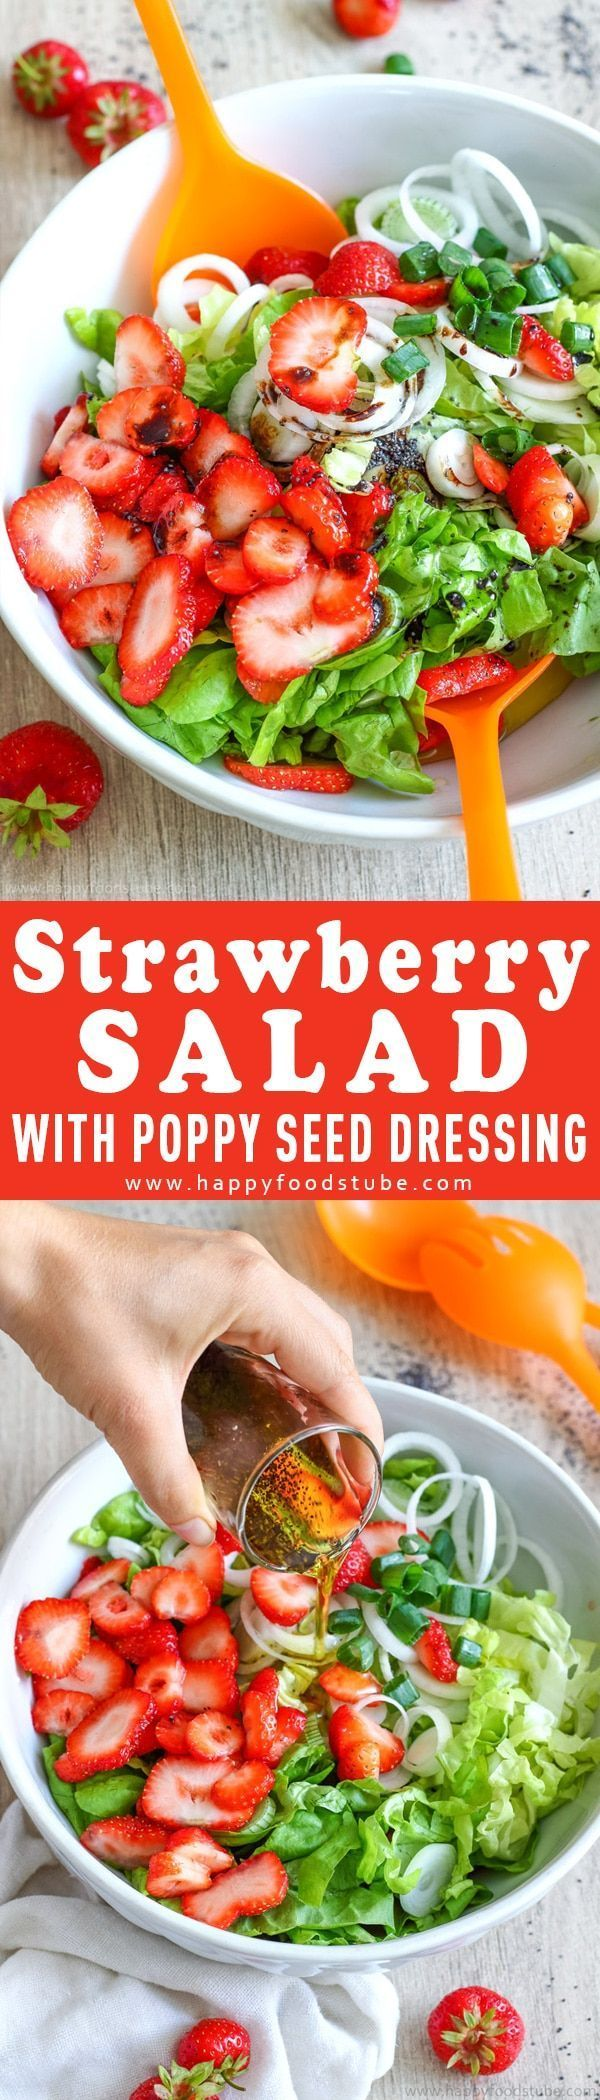 This Strawberry salad with poppy seed dressing is the perfect barbecue side dish. Combine strawberries, lettuce & spring onions with tasty 3-ingredient sweet dressing. Simple ingredients and ready in 15-minutes. via @happyfoodstube